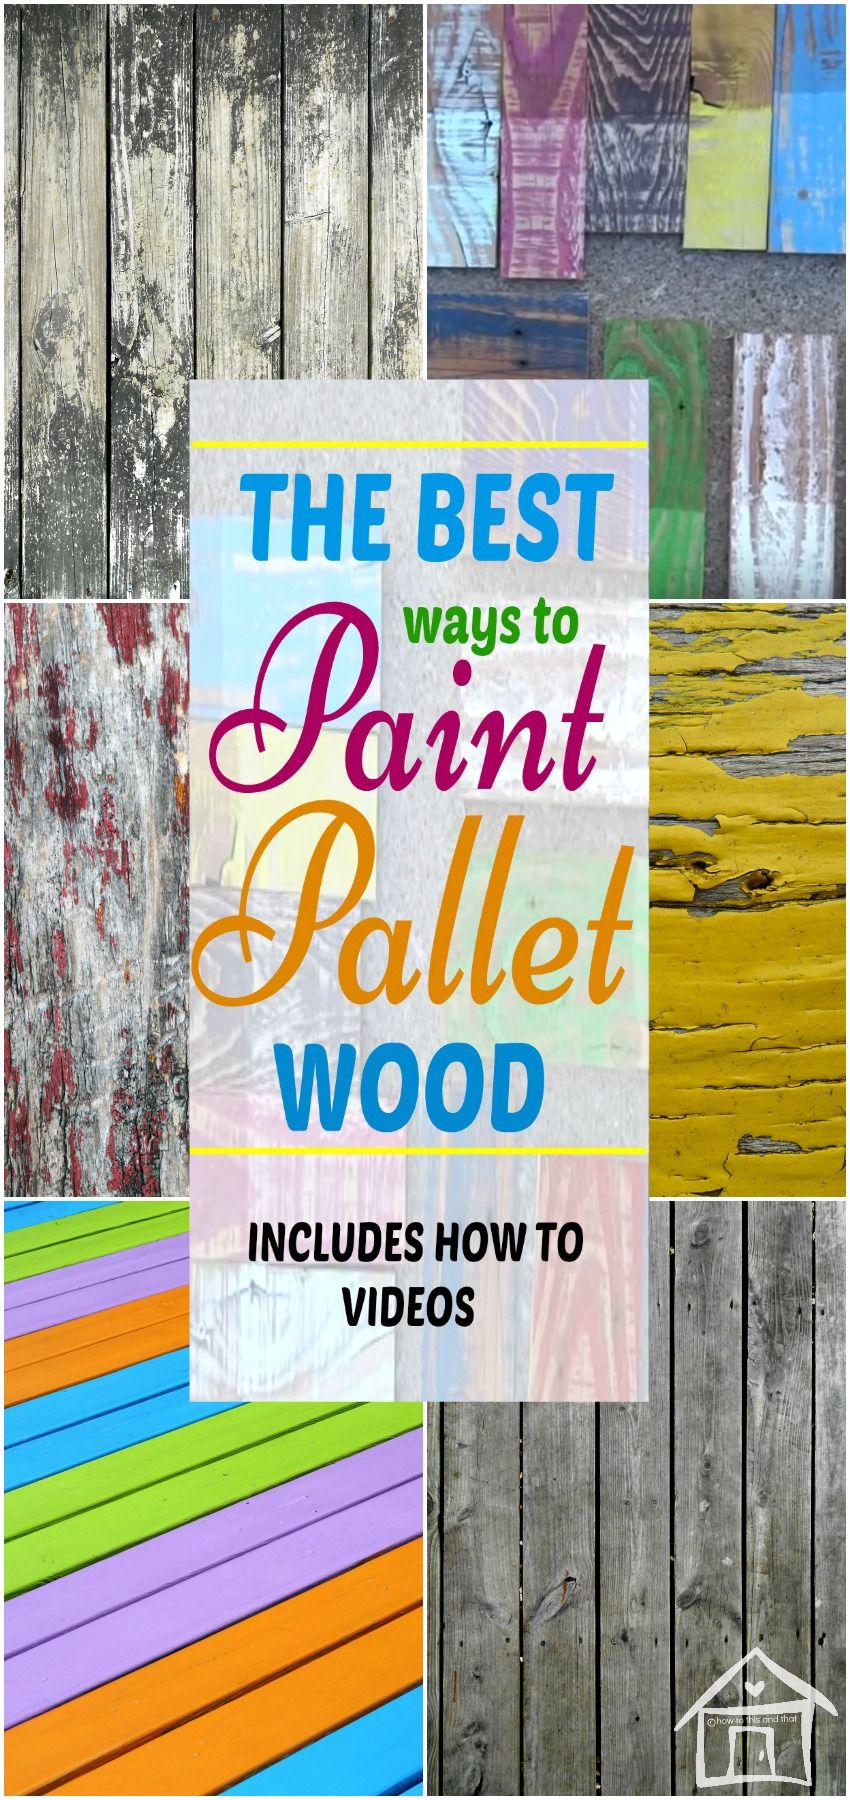 Recipes Diy Home Decor Pallet Projects Painting